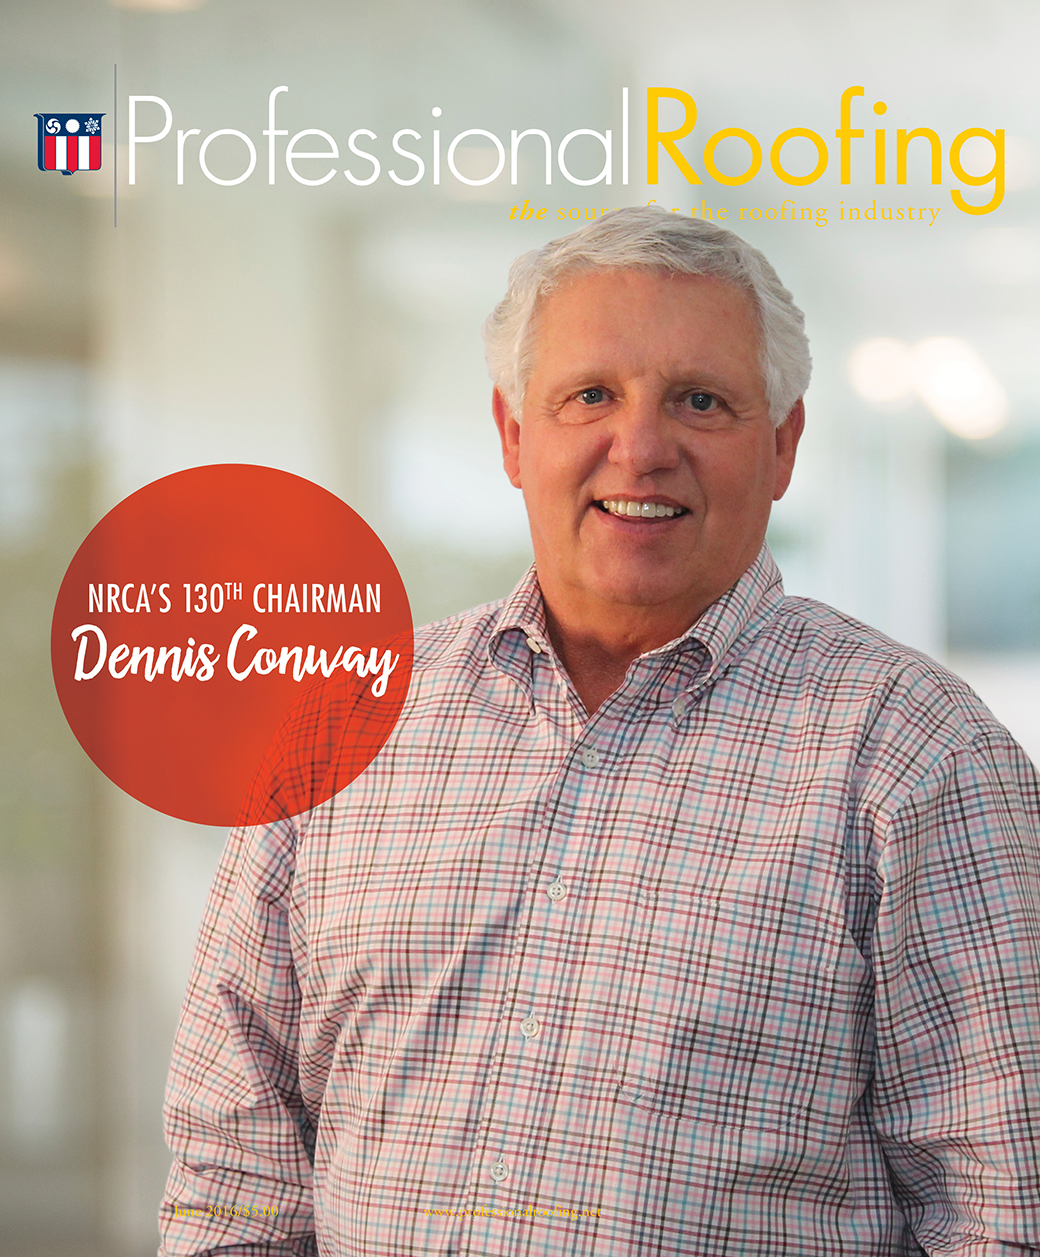 Professional Roofing Magazine 6/1/2016